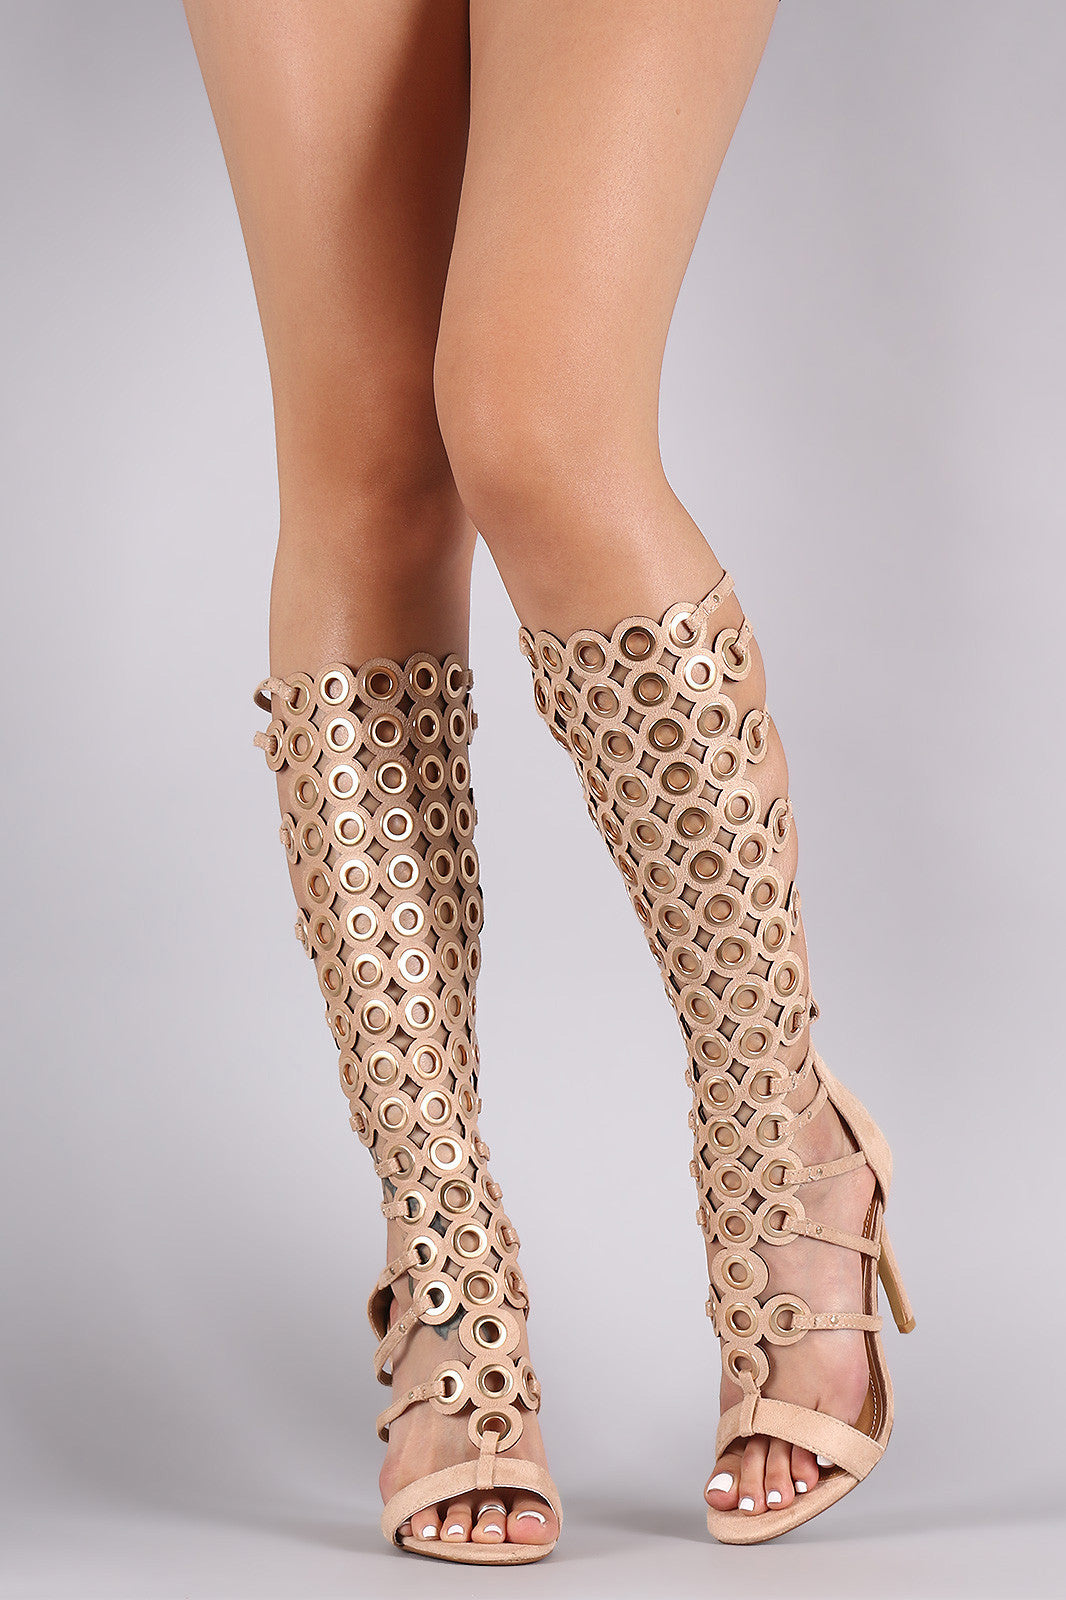 Suede Grommets Embellished Strappy Gladiator Heel - Thick 'N' Curvy Shop - 10